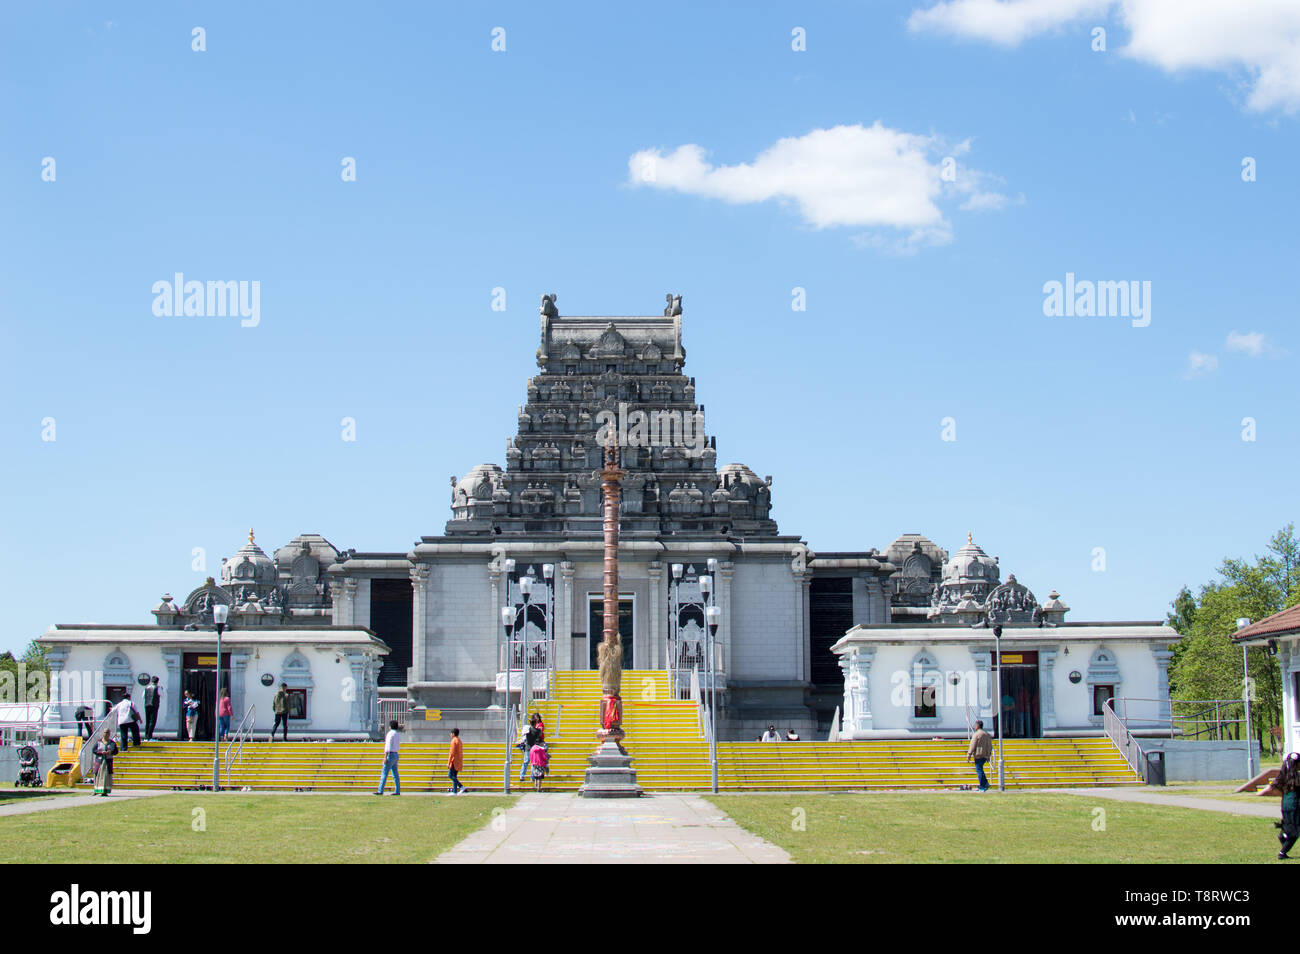 shri-venkateswara-balaji-temple-of-uk-tividale-dudley-birmingham-west-midlands-uk-T8RWC3.jpg